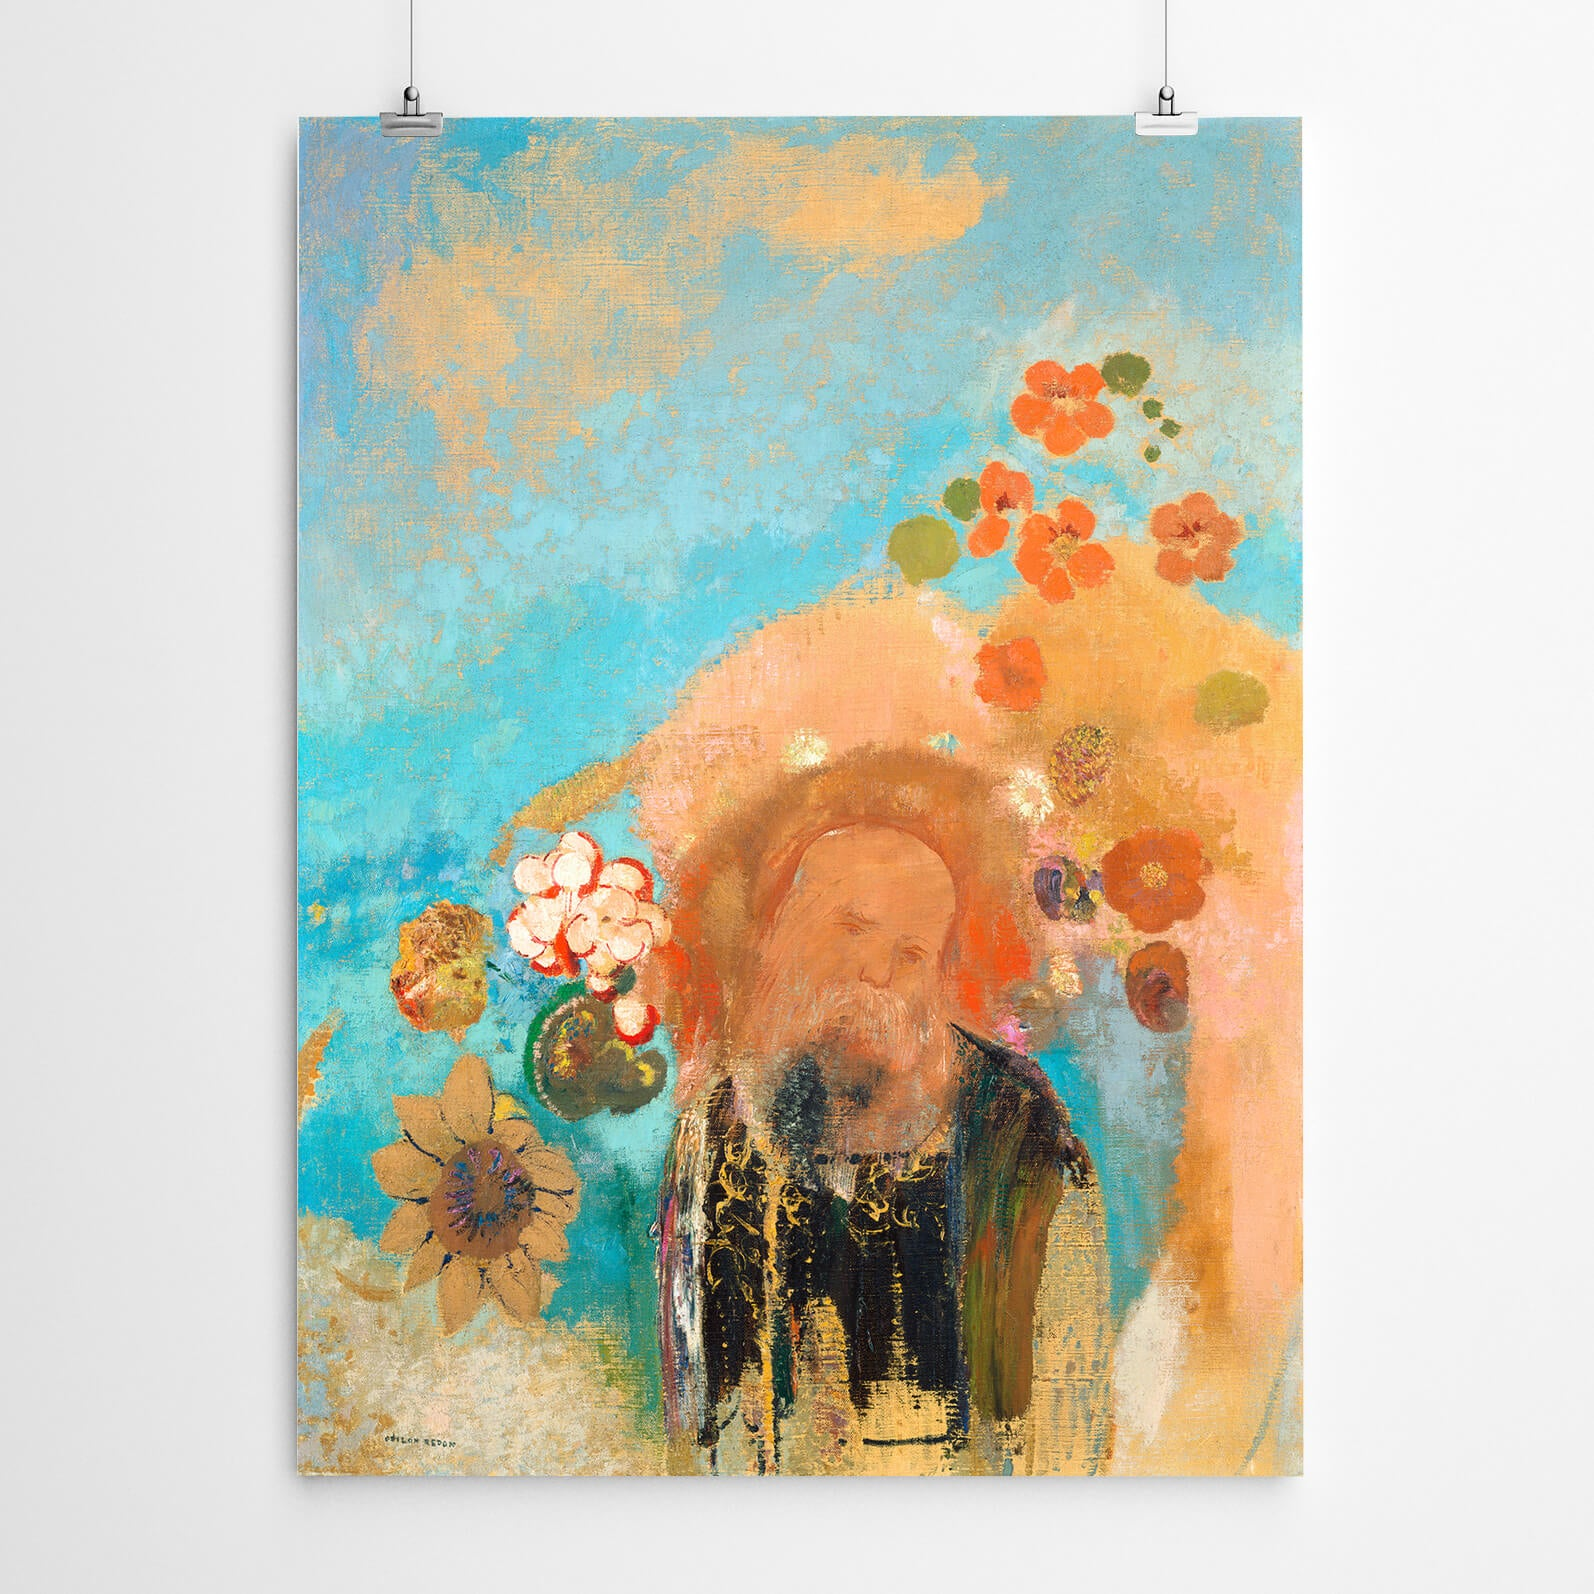 Redon Abstract Wall Art